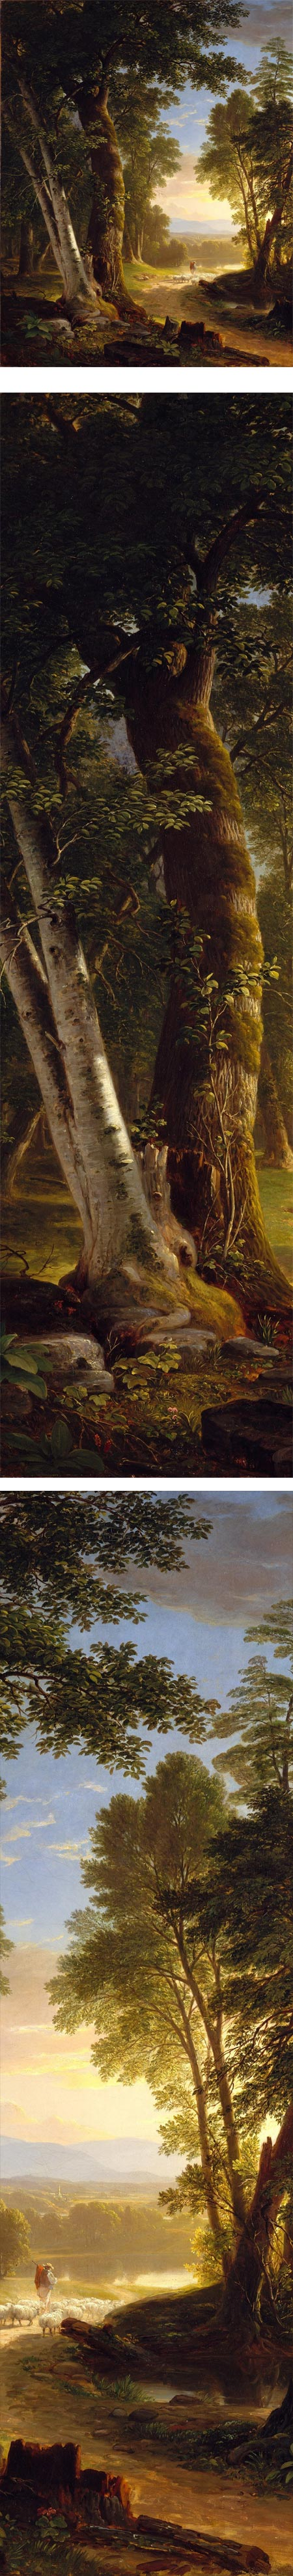 The Beeches, Asher Brown Durand